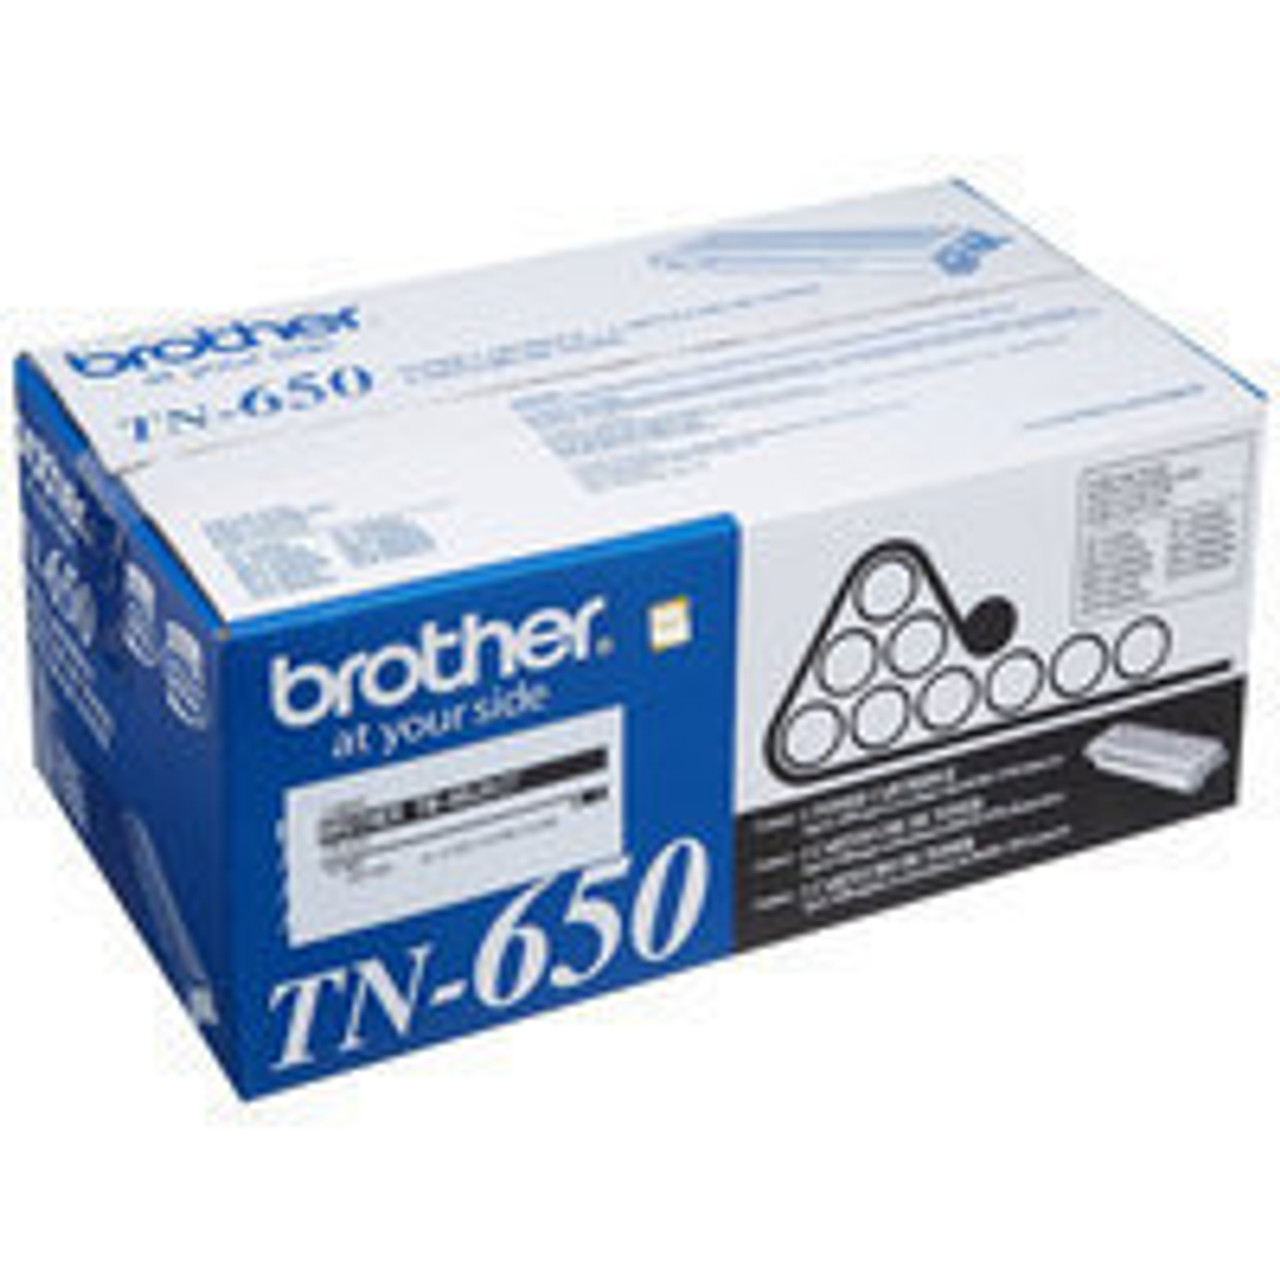 for Brother DCP-8080 TN-650 DCP-8085 MFC-8480 HL-5340 HL-5370 MFC-8680 Supply Spot offers 3 PK Compatible TN650 Toner Cartridge 1 DR-620 Drum Unit 1 DR620 Drum Unit MFC-8890 Printers